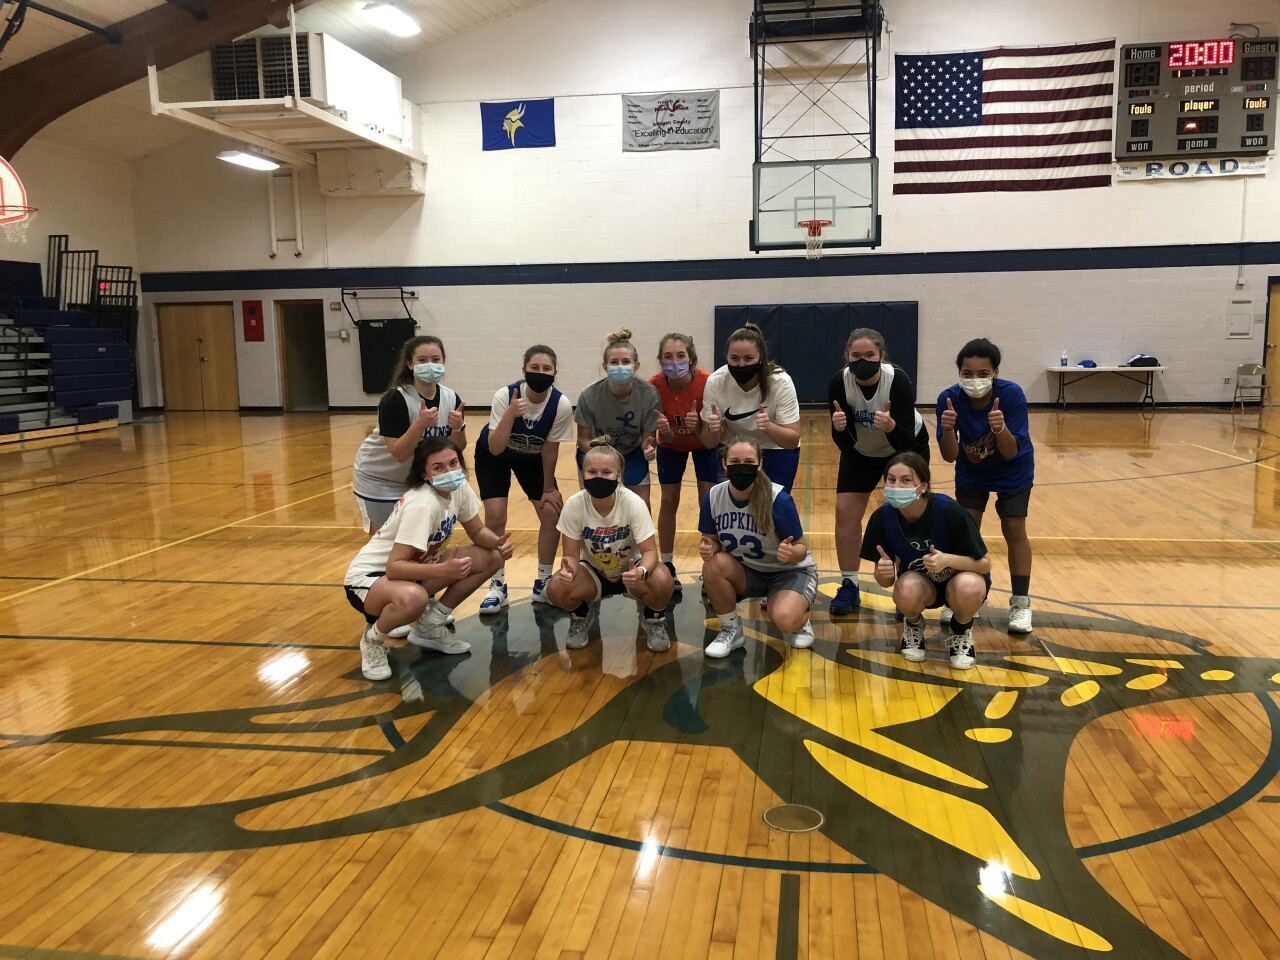 Hopkins girls basketball team gets started with non-contact practice